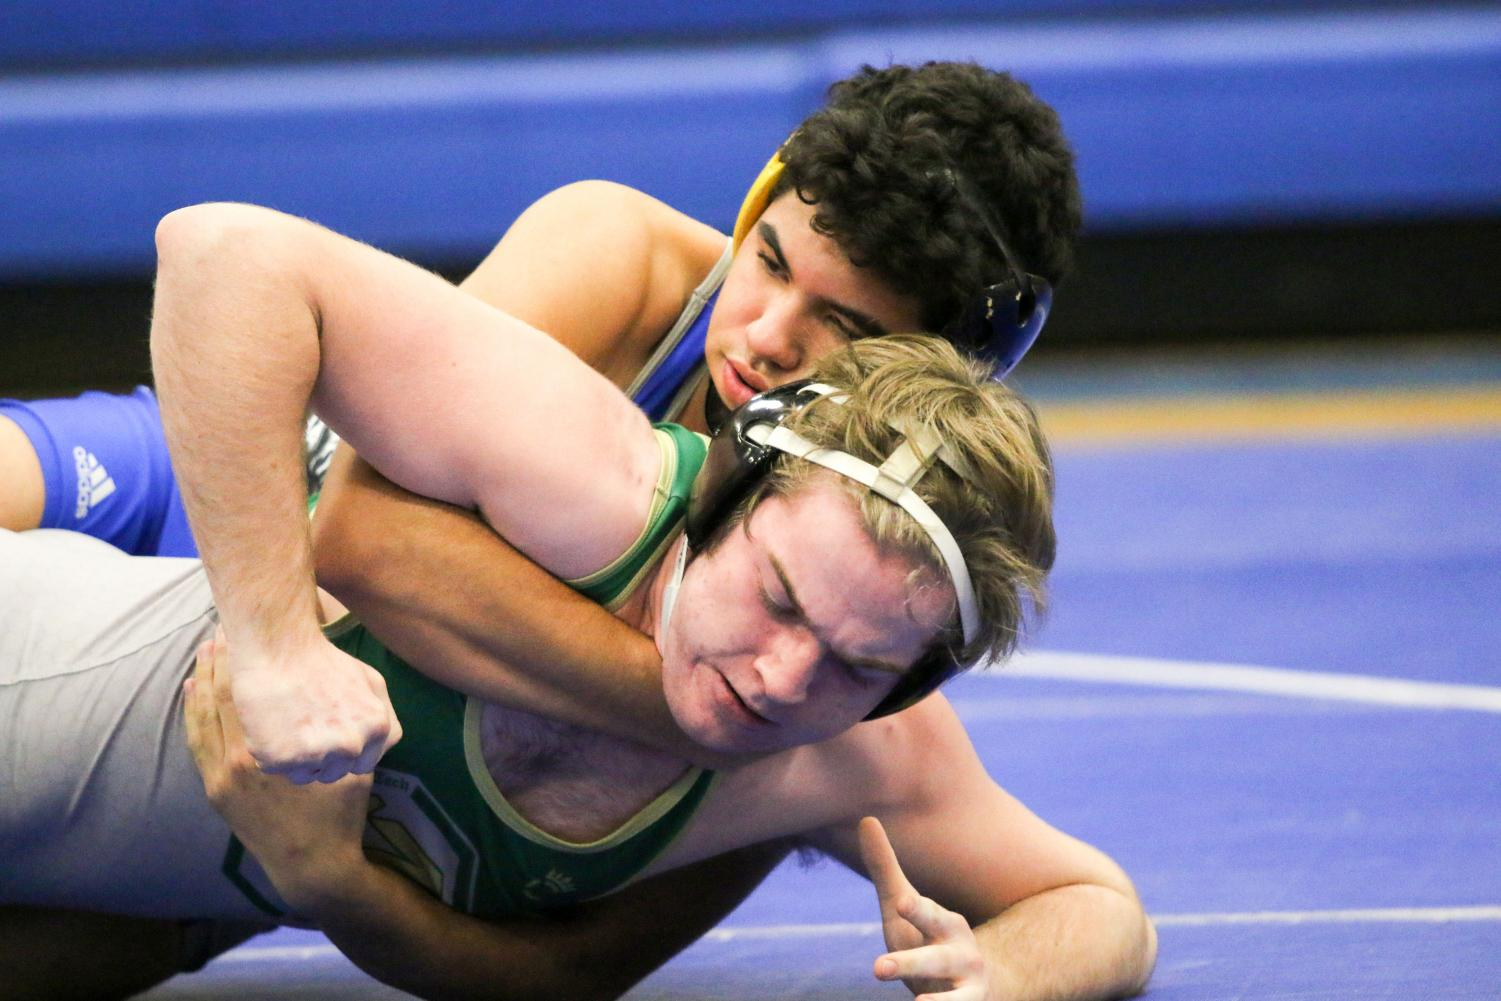 In the 170-lb weight class, Brandon Warden, takes down his opponent from Lane Tech. Taft beats Lane 66-17 in overall team points.